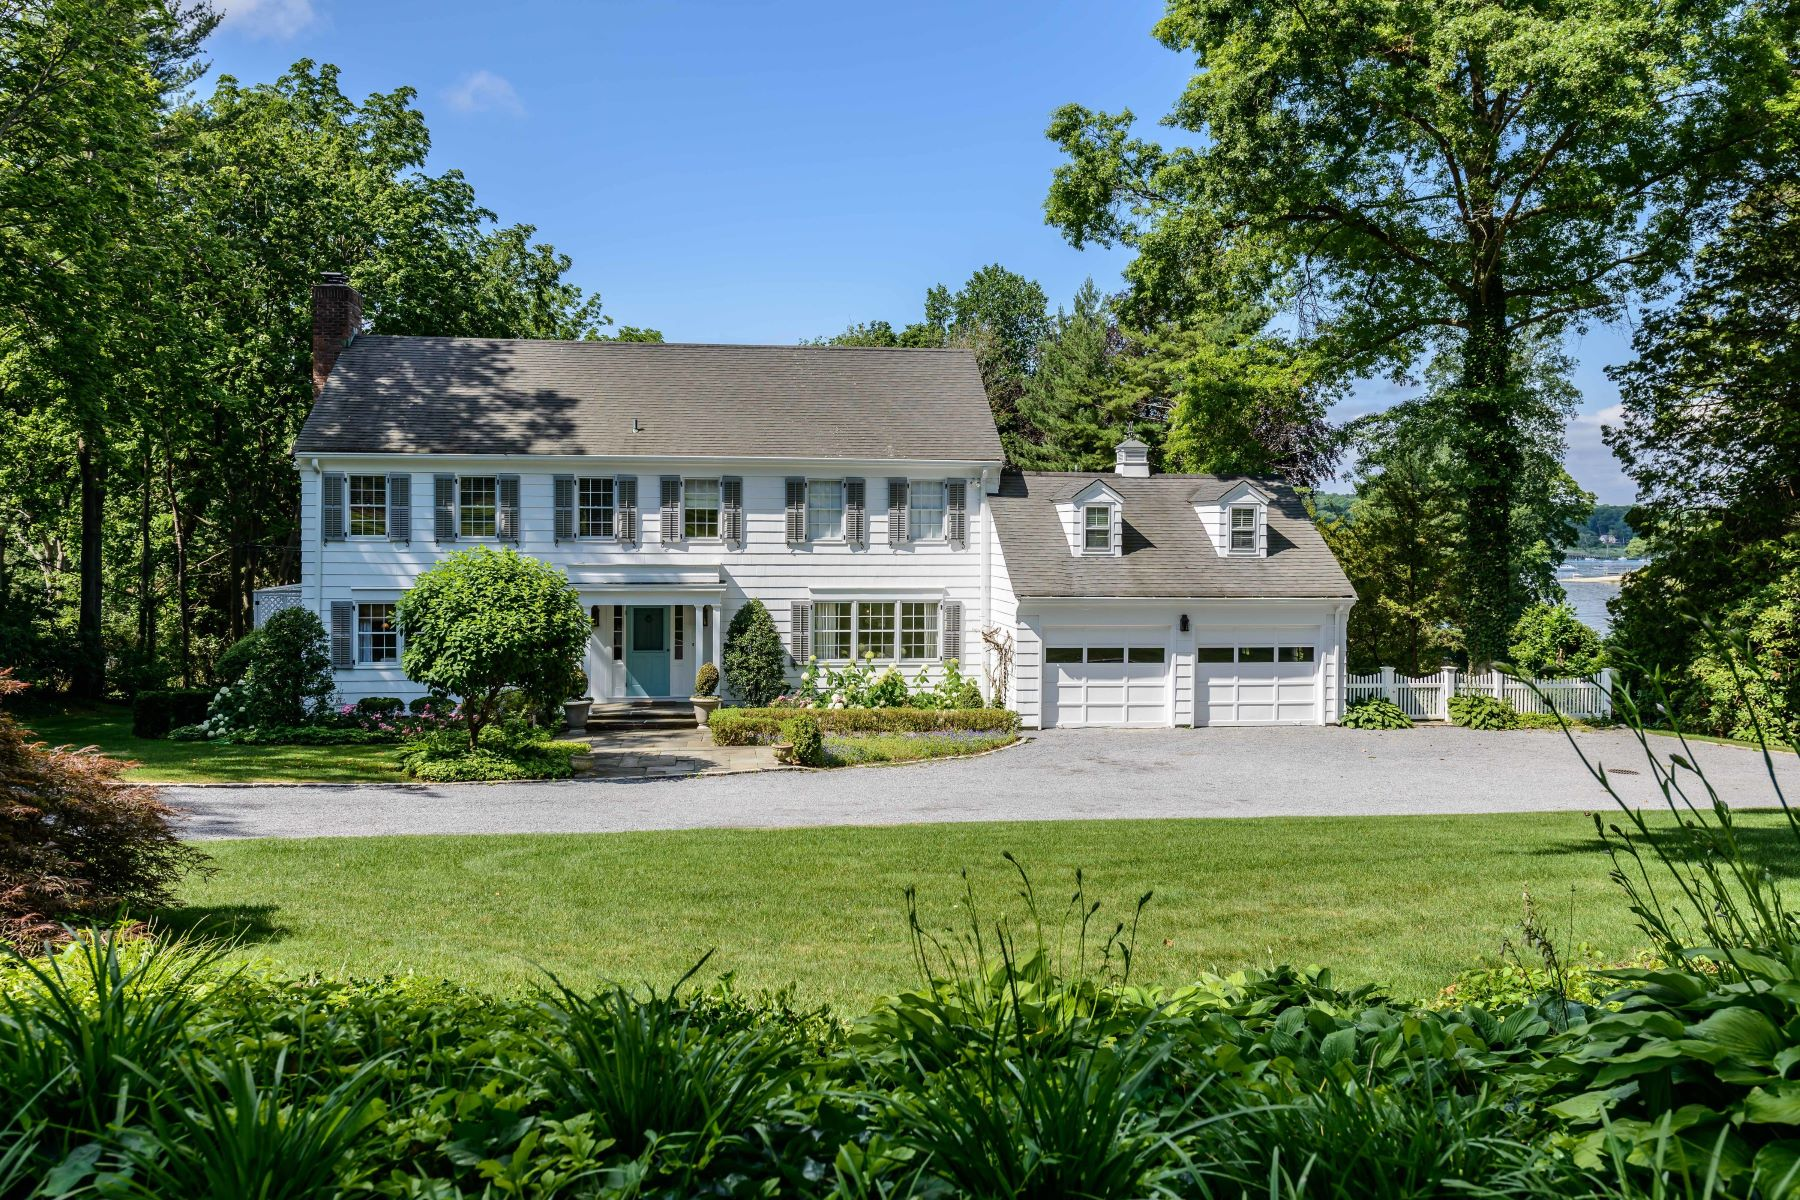 Single Family Home for Sale at 9 Harbor Hill Rd , Huntington Bay, NY 11743 9 Harbor Hill Rd, Huntington Bay, New York, 11743 United States